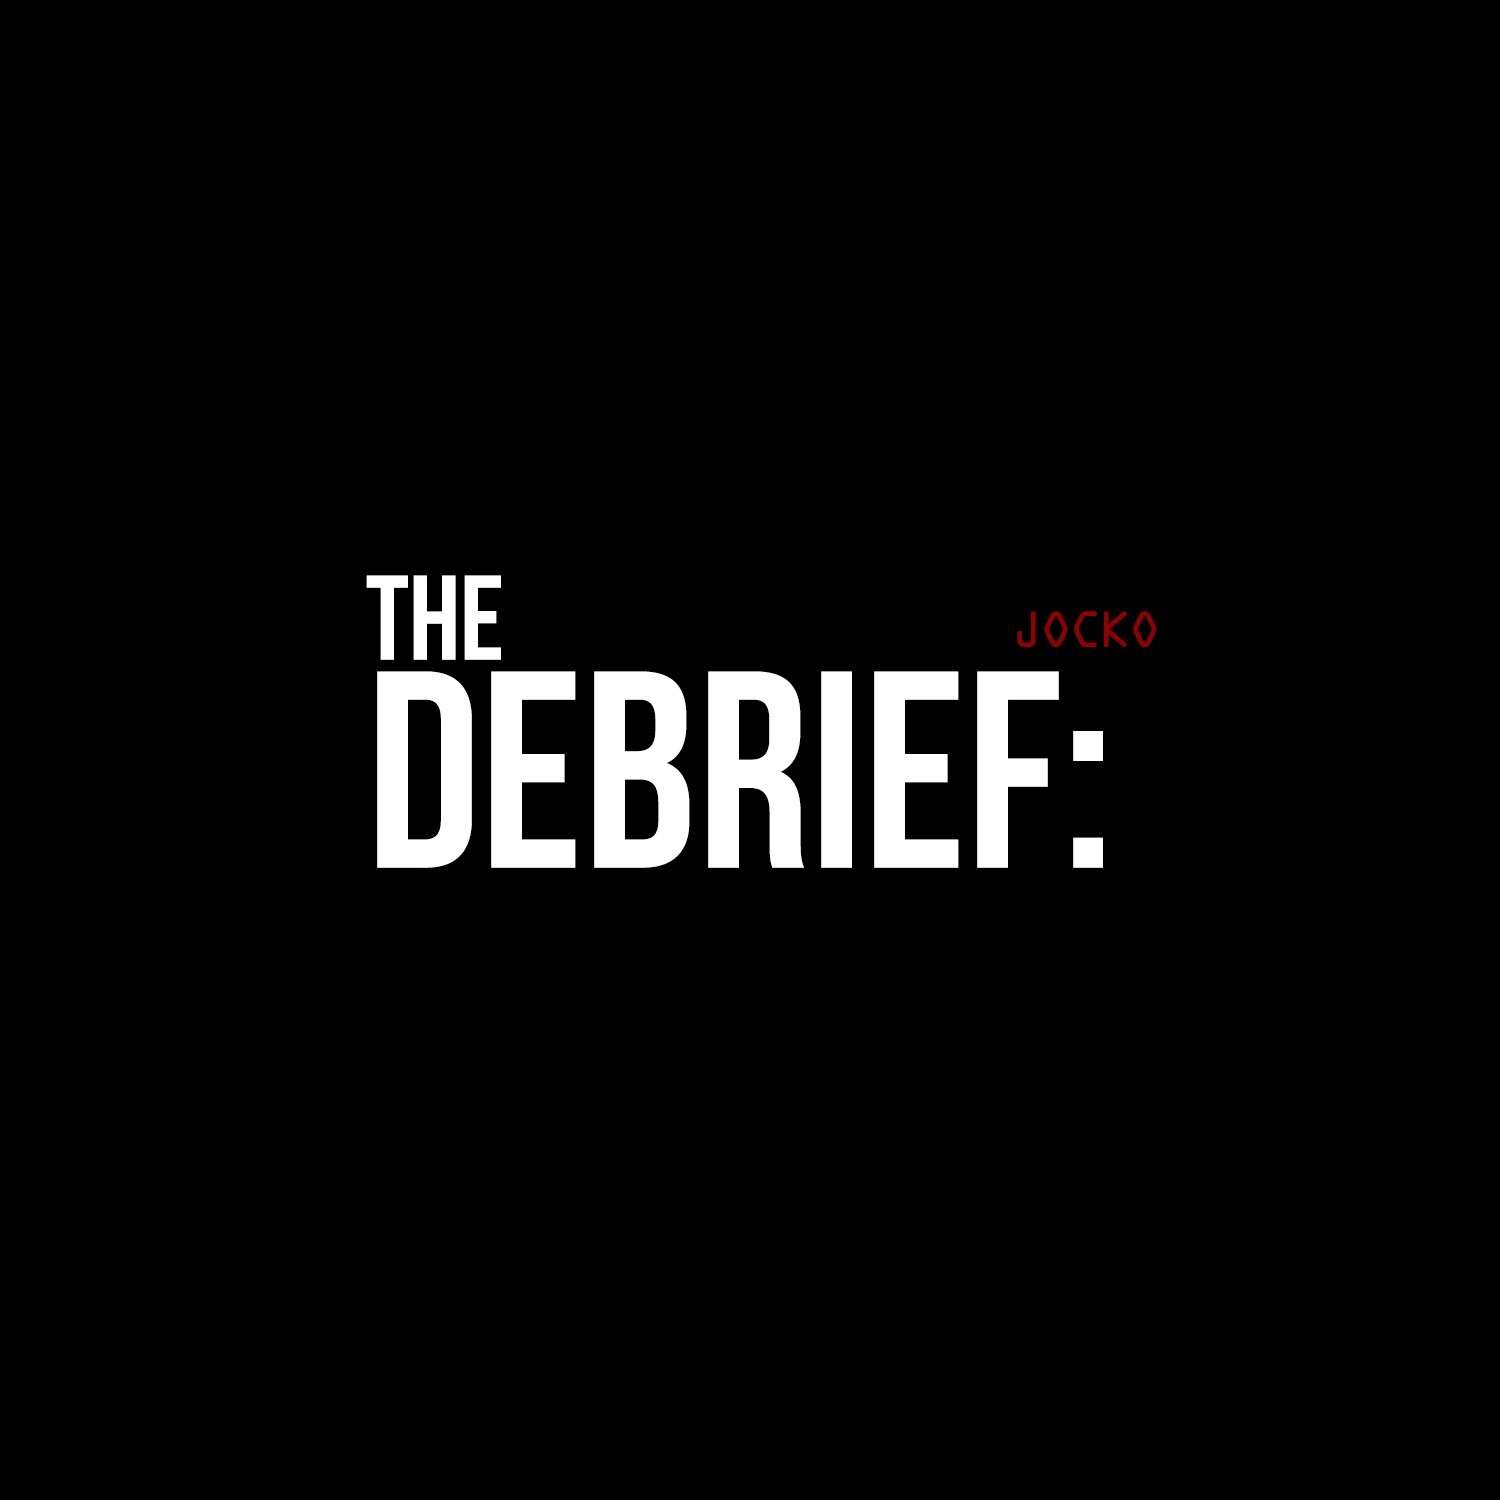 The Debrief w/ Jocko and Dave Berke #16: We All Have to Know WHY We Are Doing What We Are Doing